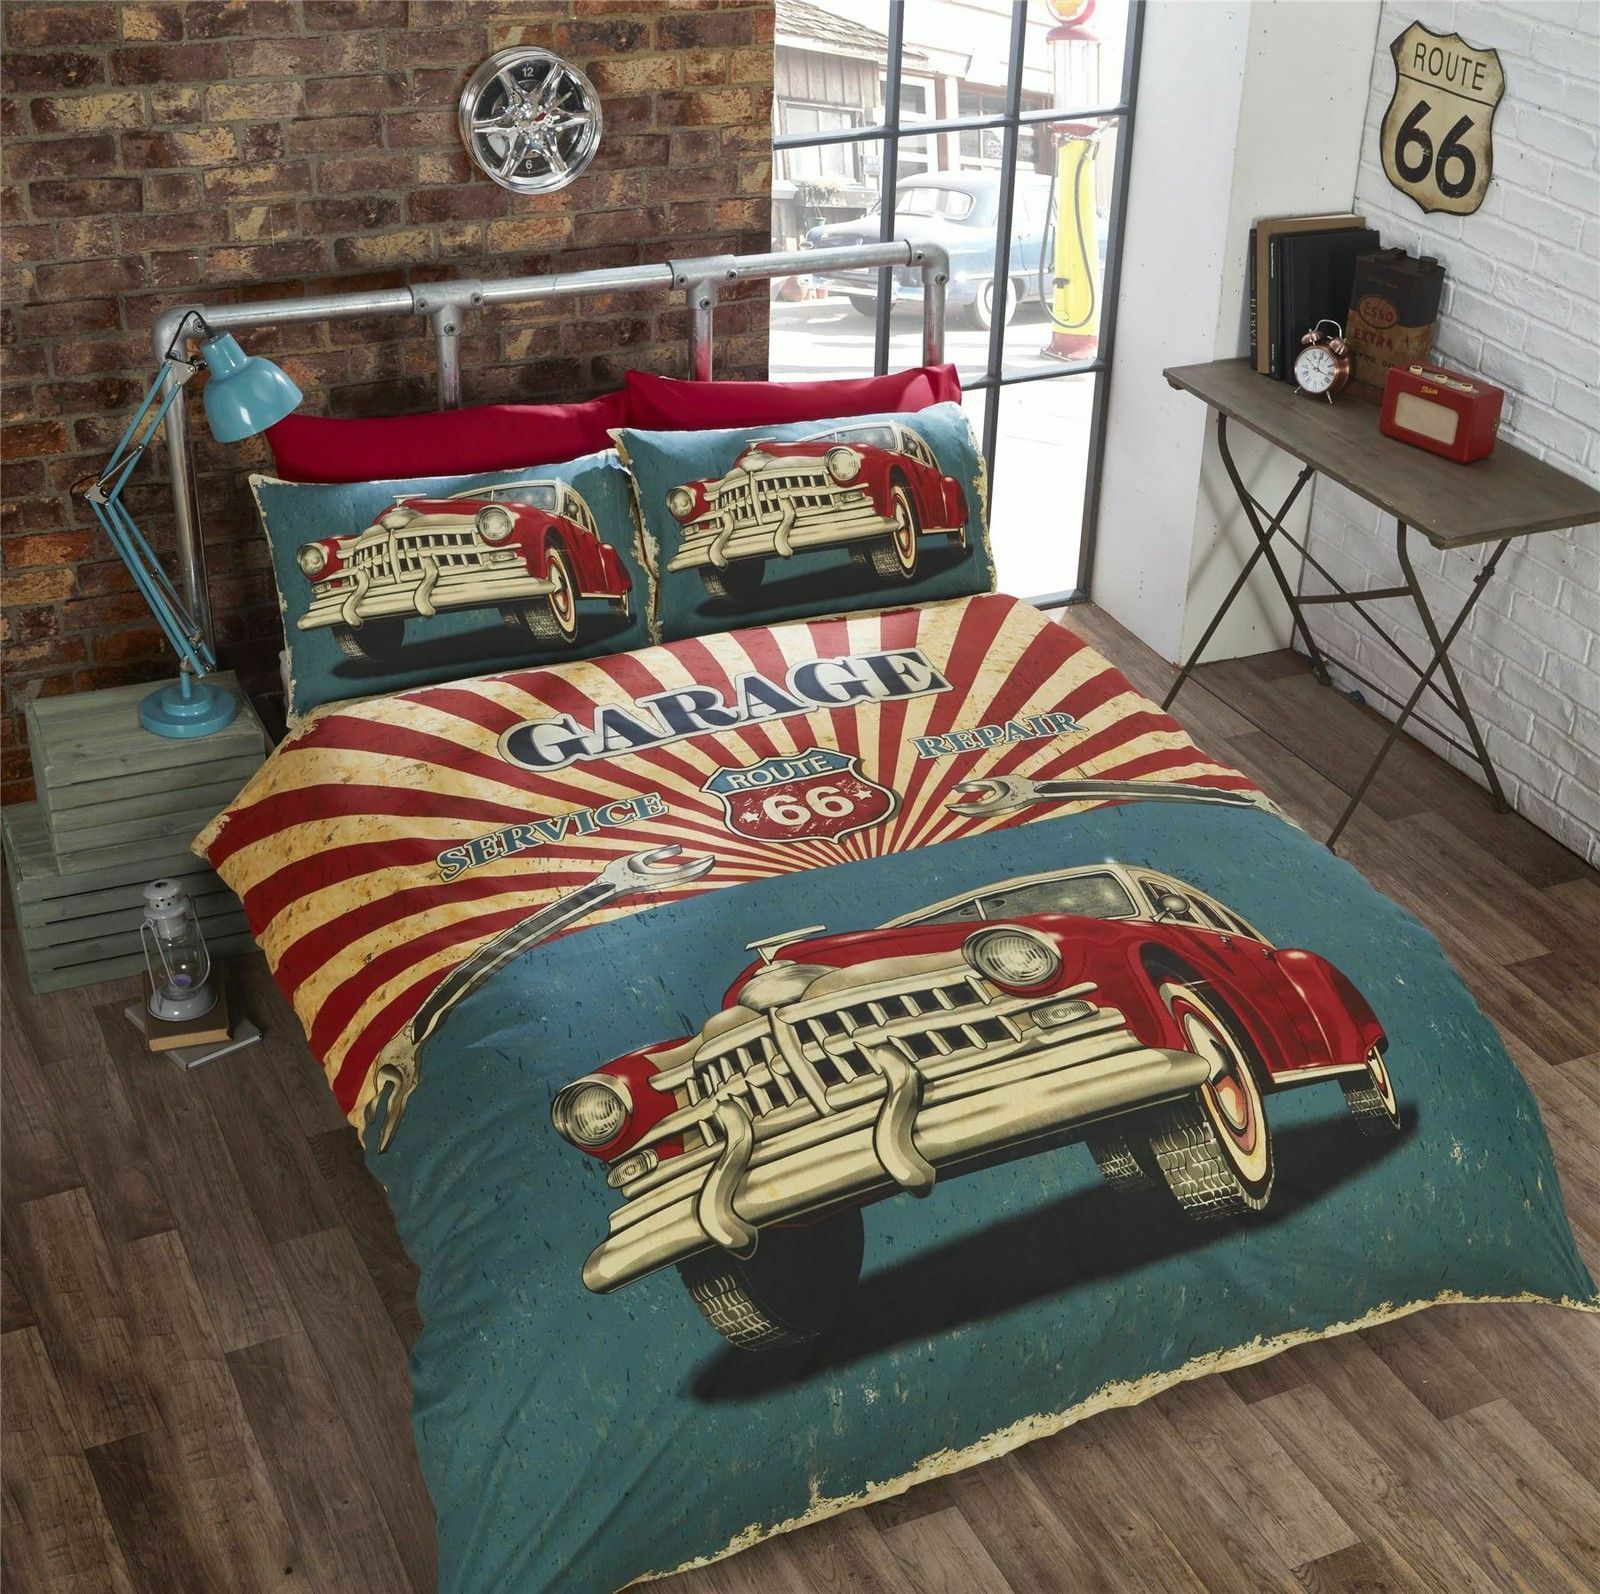 Favorite Vintage Duvet Cover Bed Set & Pillow Case Retro USA Car Garage  DI17